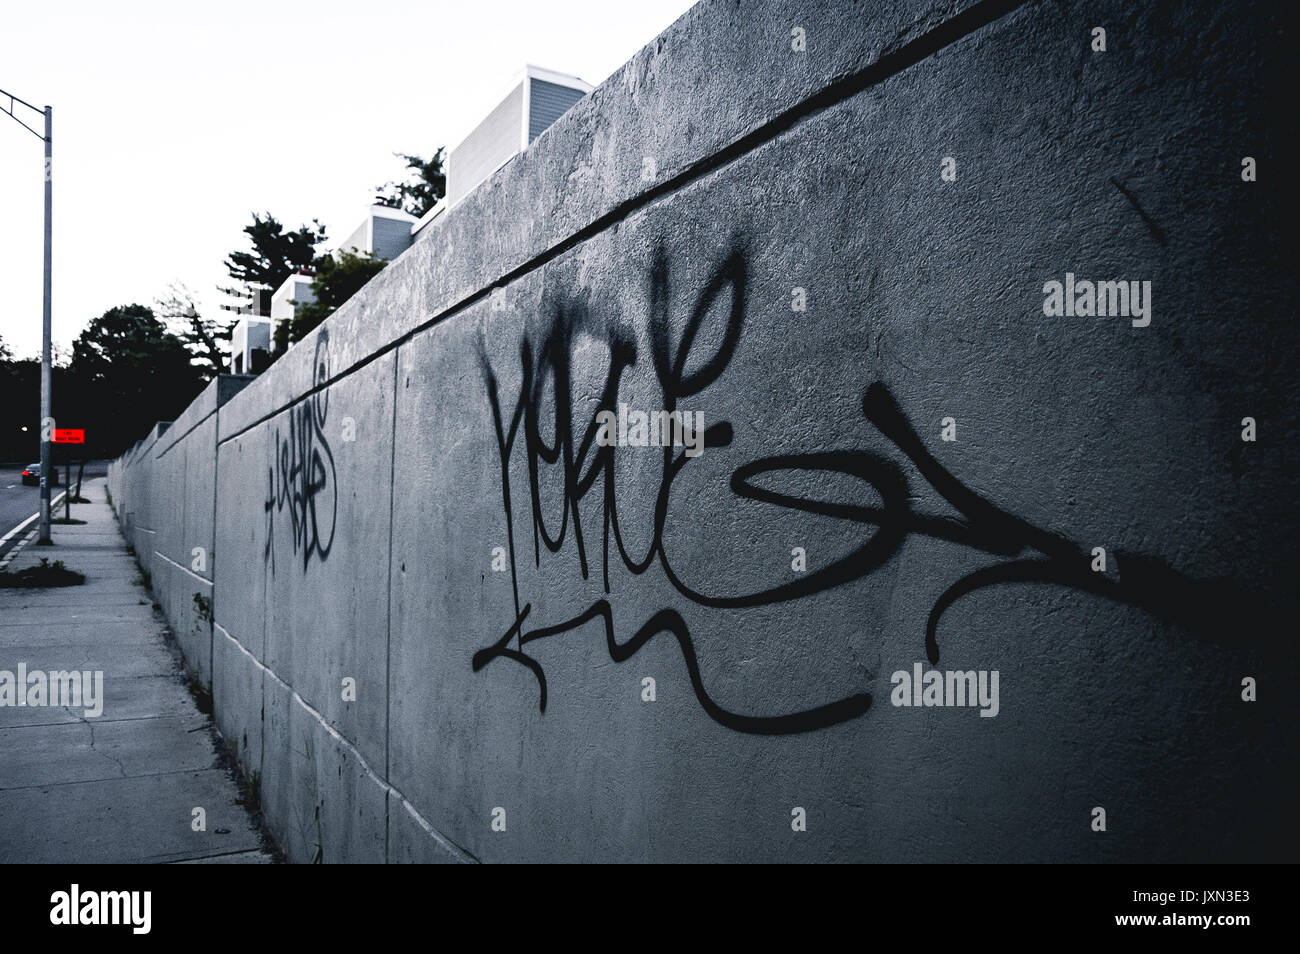 Minimalist urban graffiti on a gray day. - Stock Image